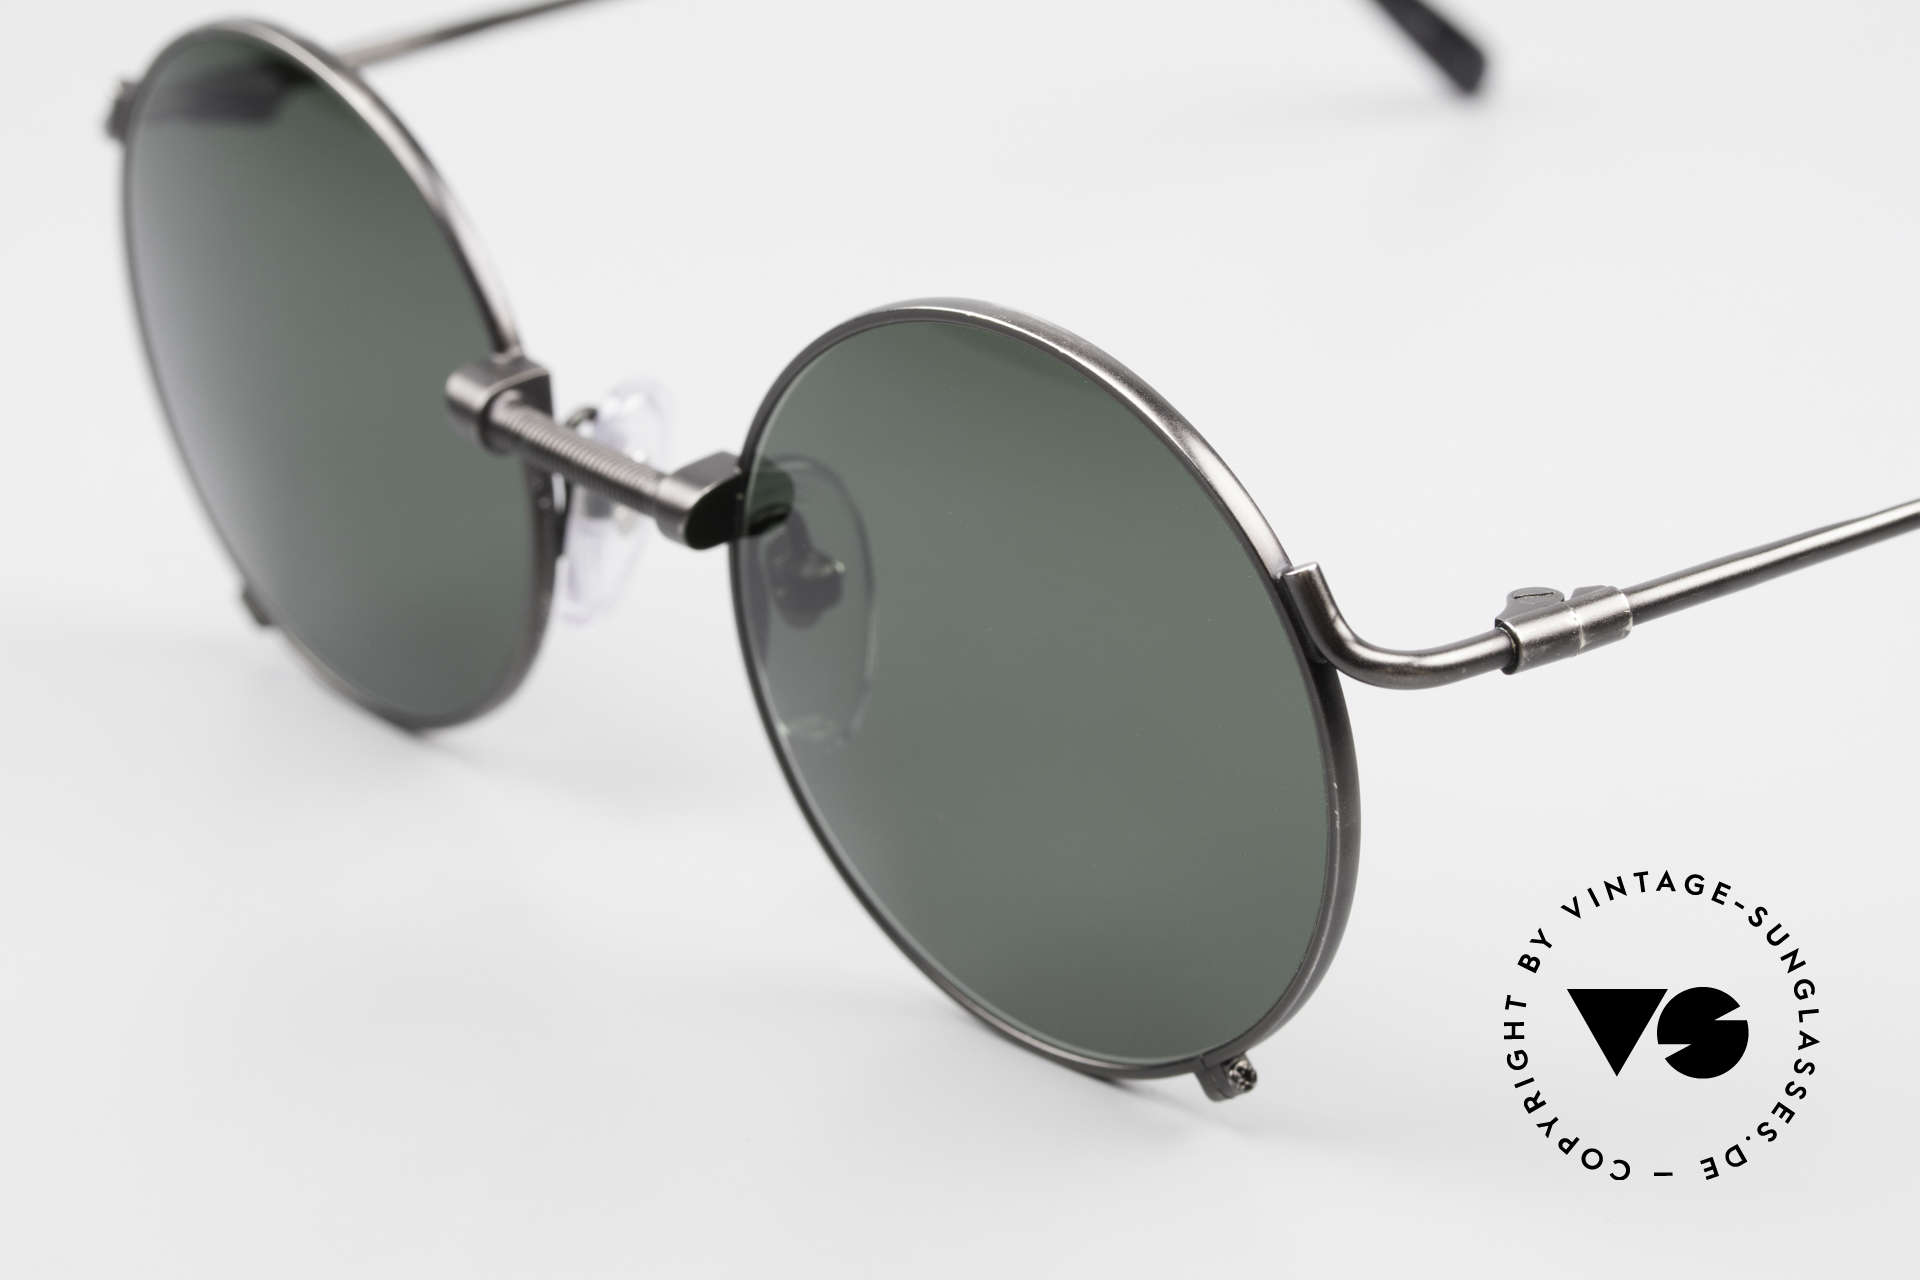 Jean Paul Gaultier 55-7162 Round Vintage Sunglasses 90s, 2nd hand model, but professionally refurbished, Made for Men and Women